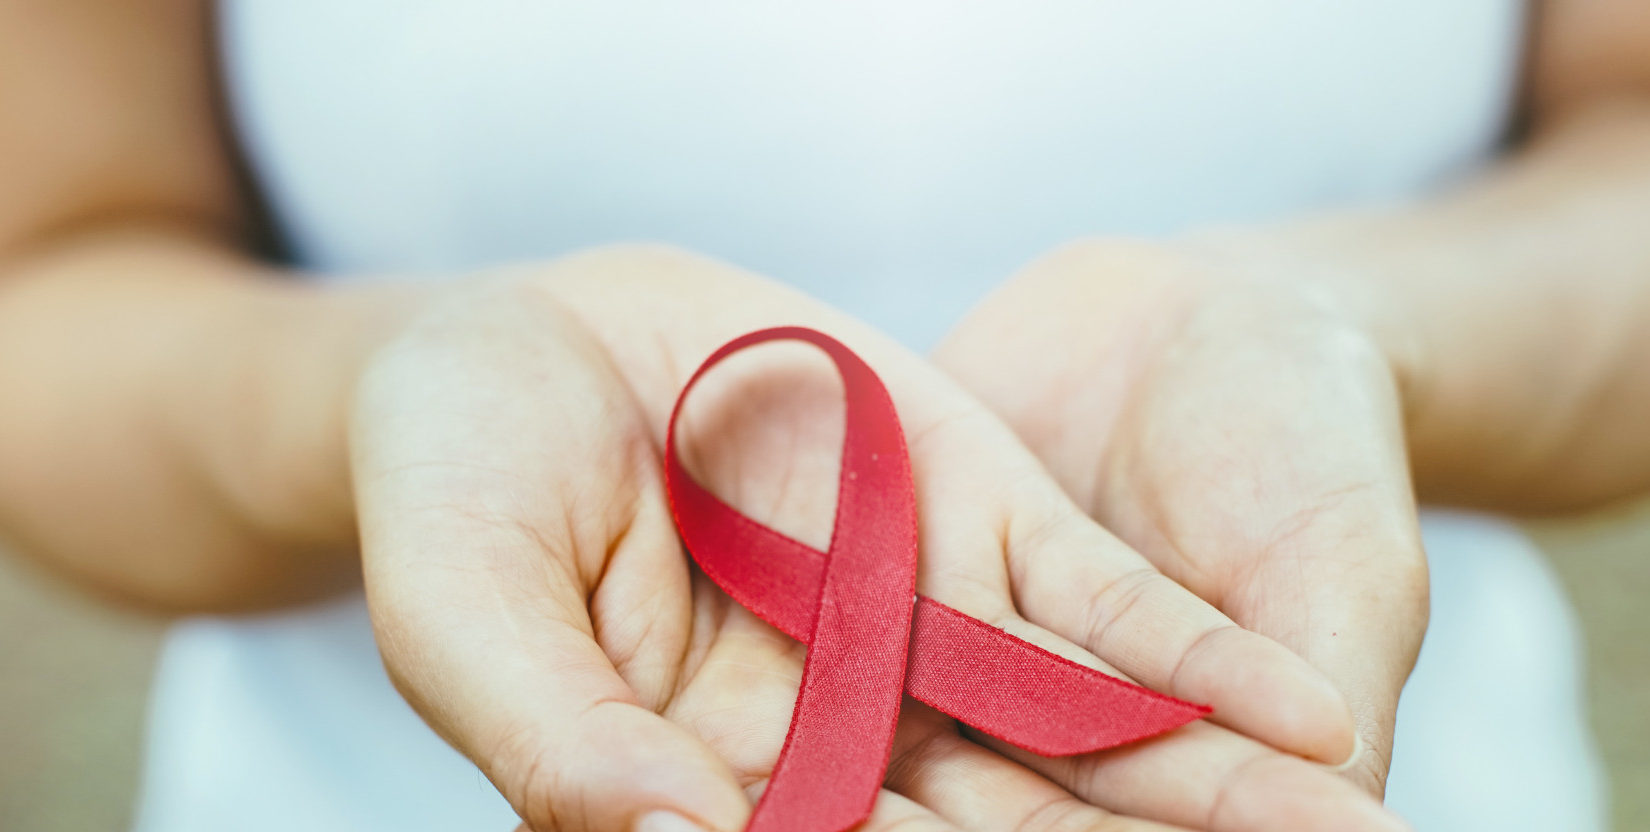 Cure for HIV AIDS How the London Patient can help in Developing HIV Cure